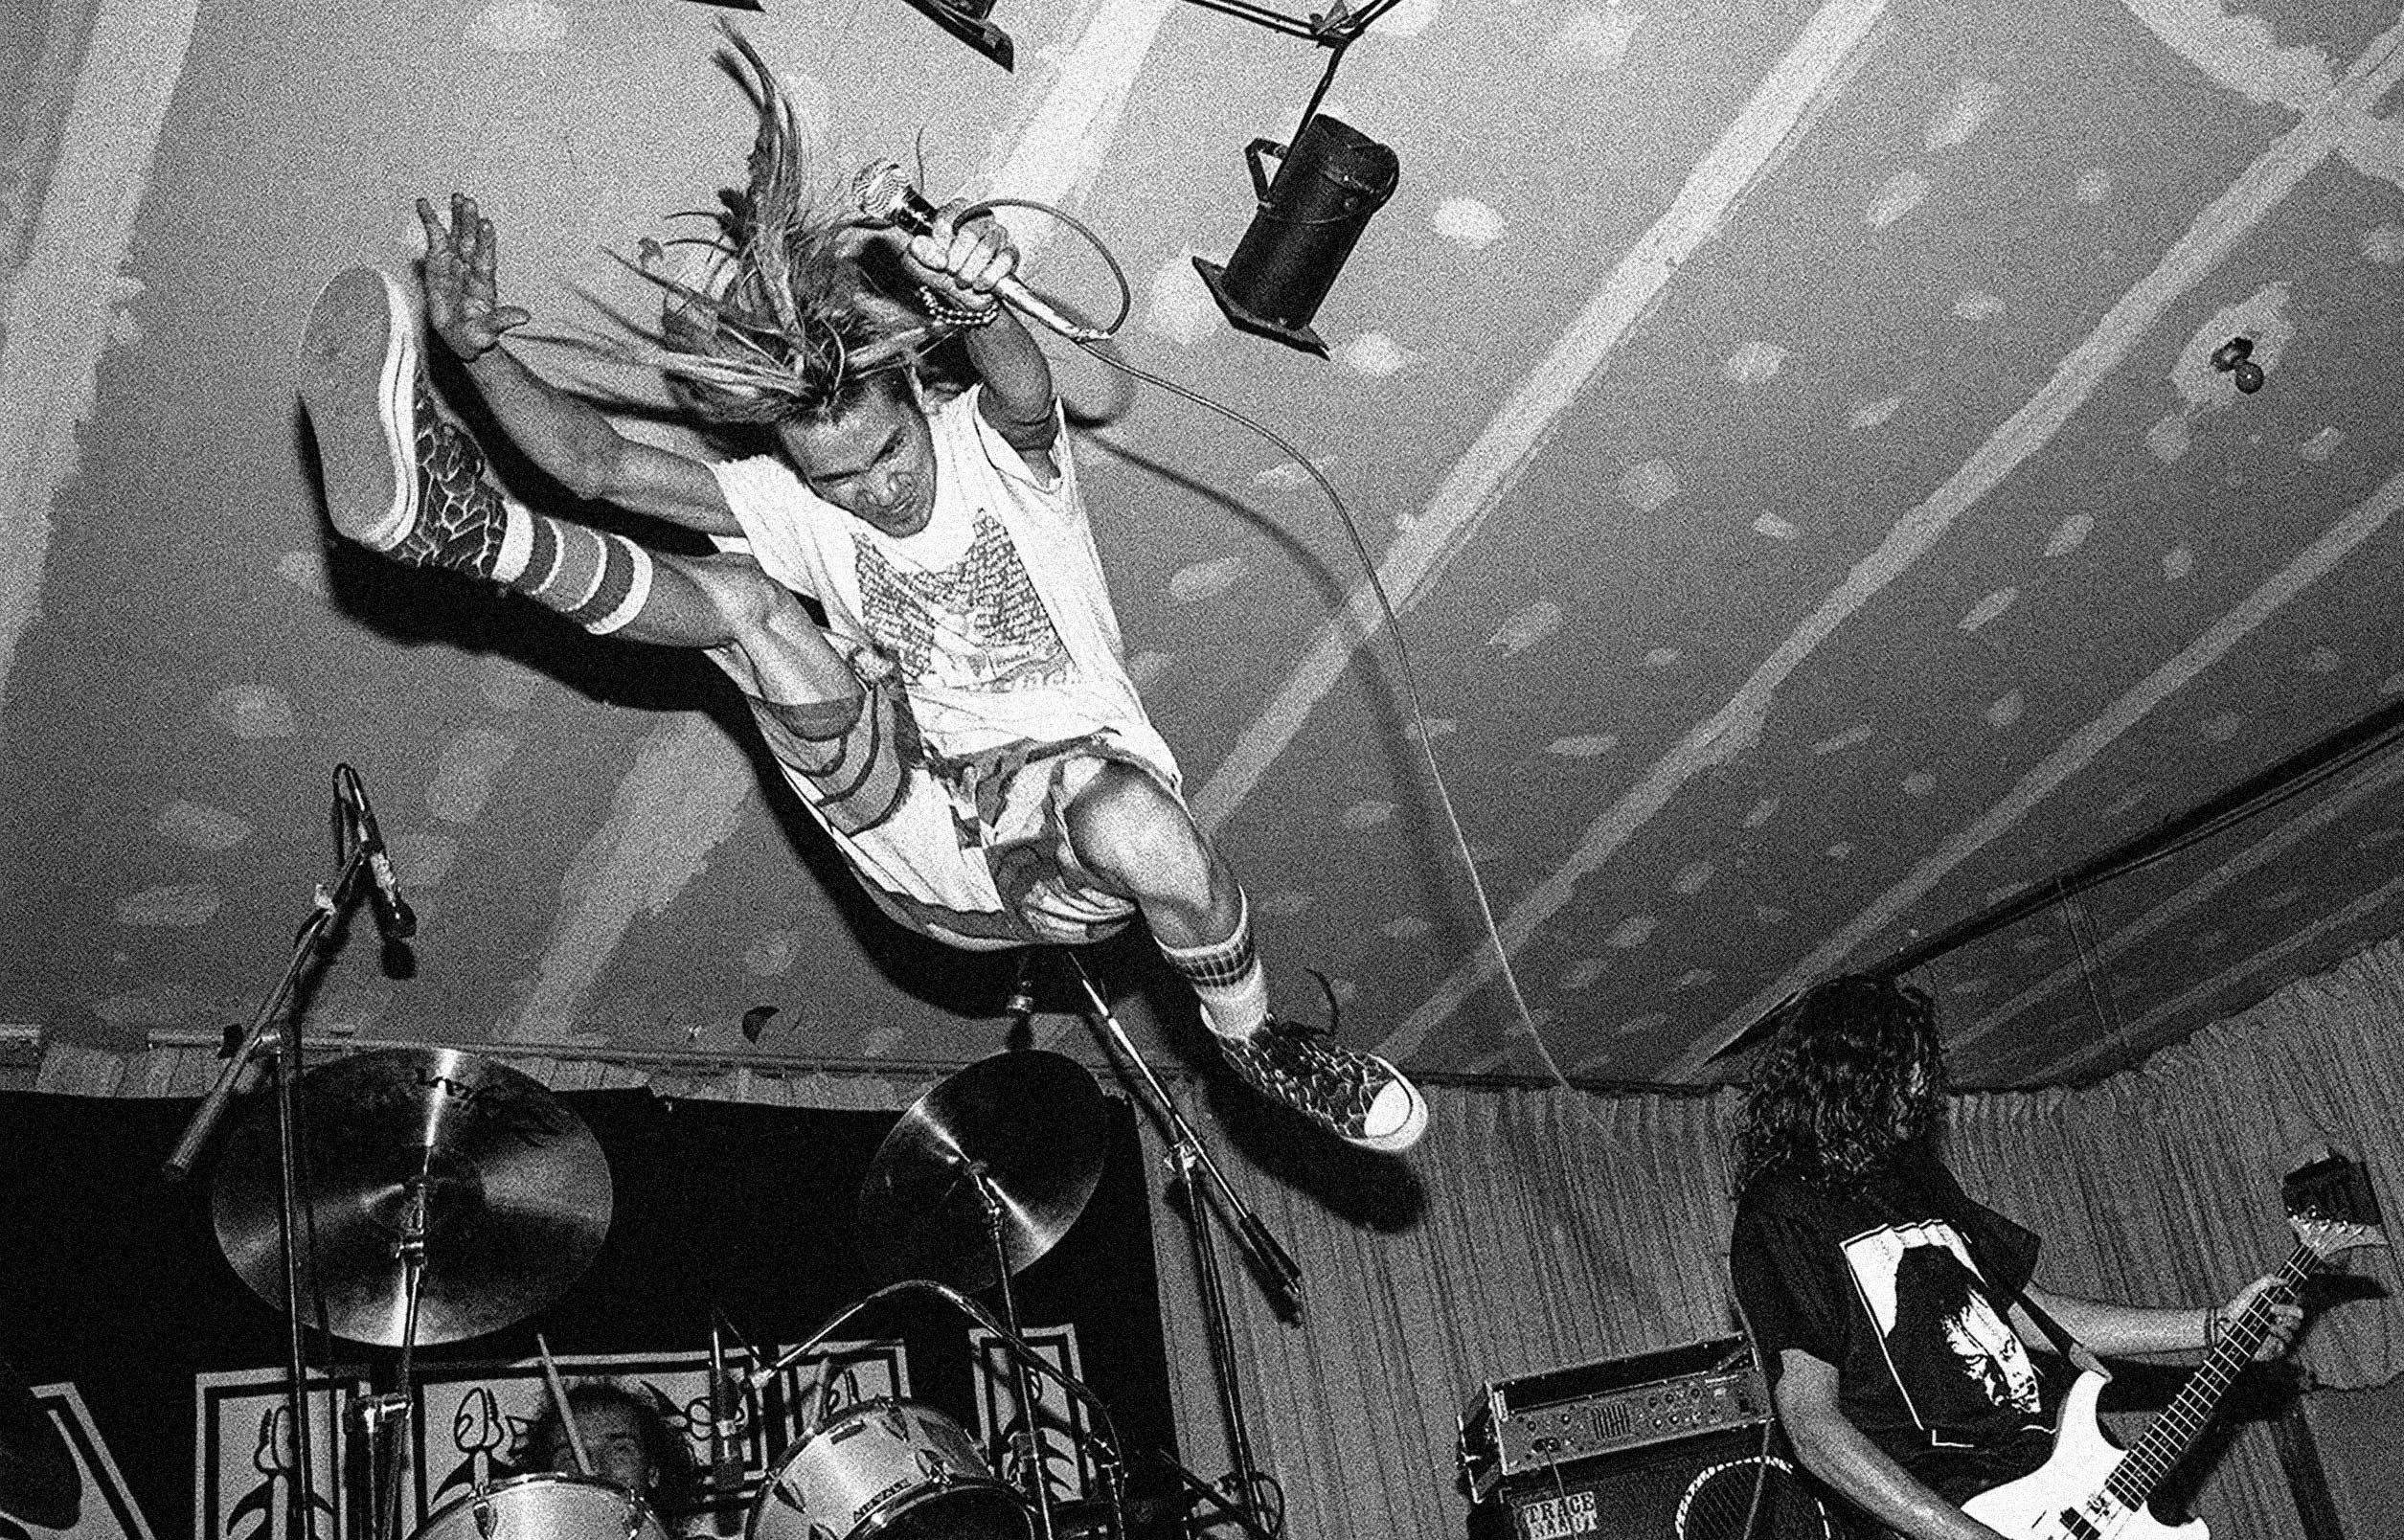 SNFU's Early Years, Part One